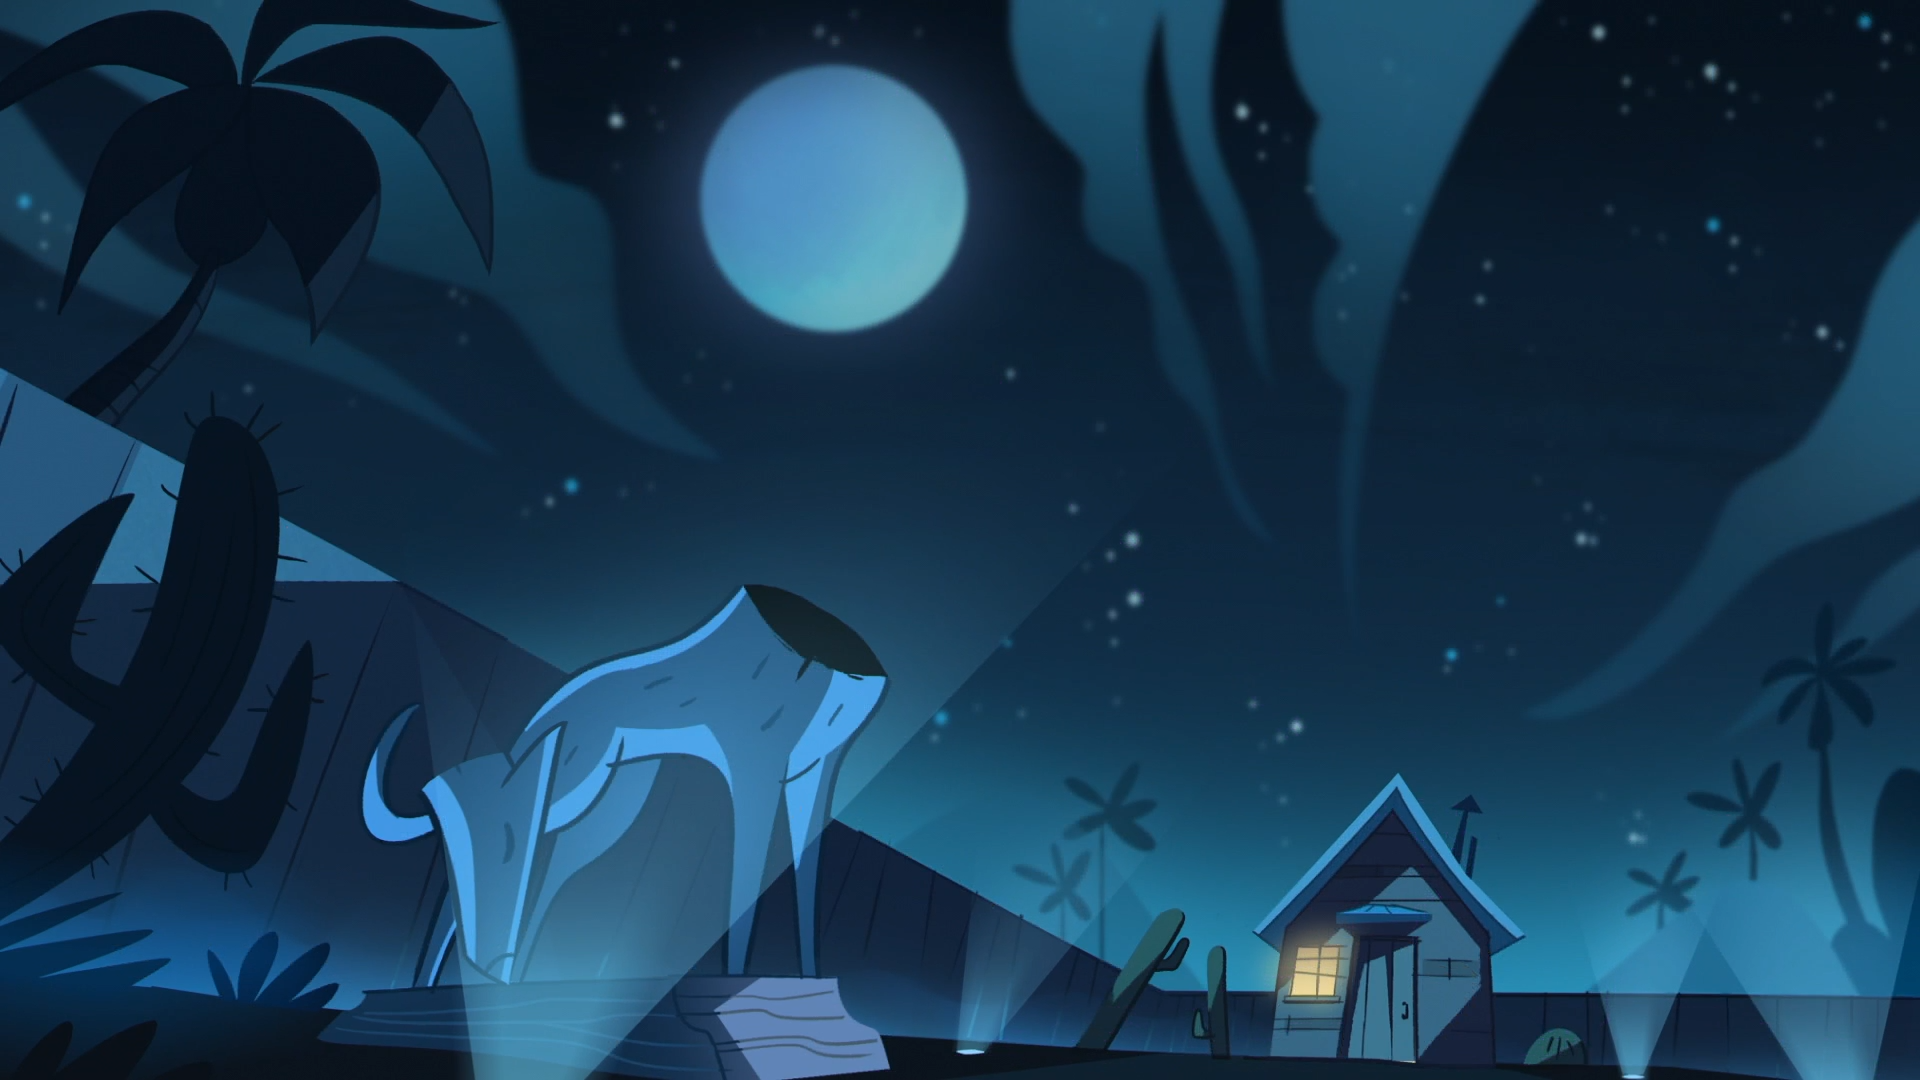 image cheer up star background diaz house backyard night png